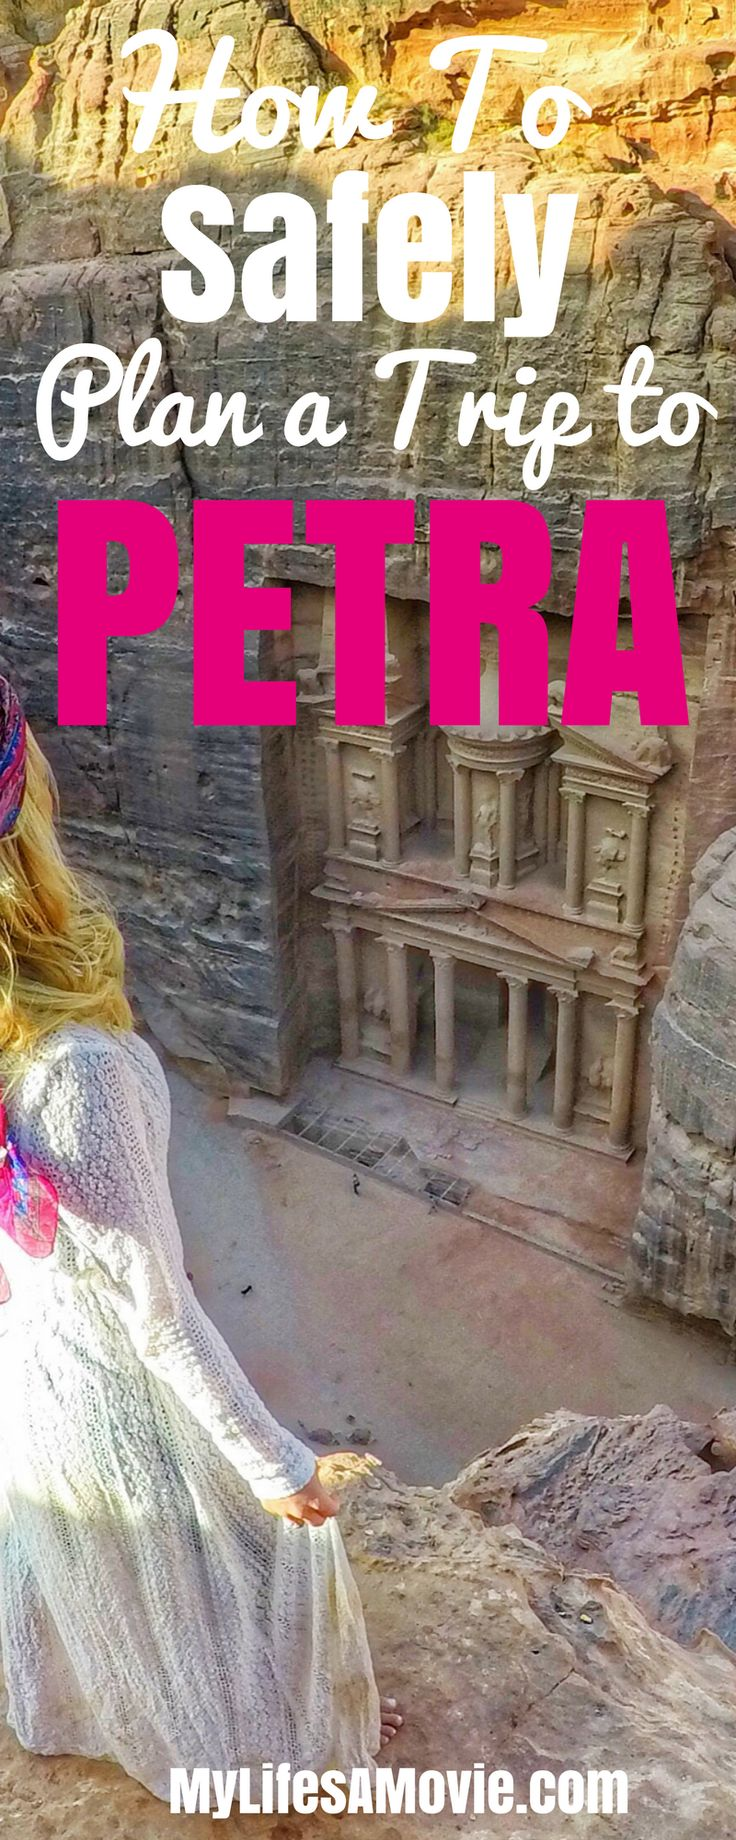 Here's everything you need to know to plan a safe trip to Petra in Jordan! I traveled there solo and had no problems at all!